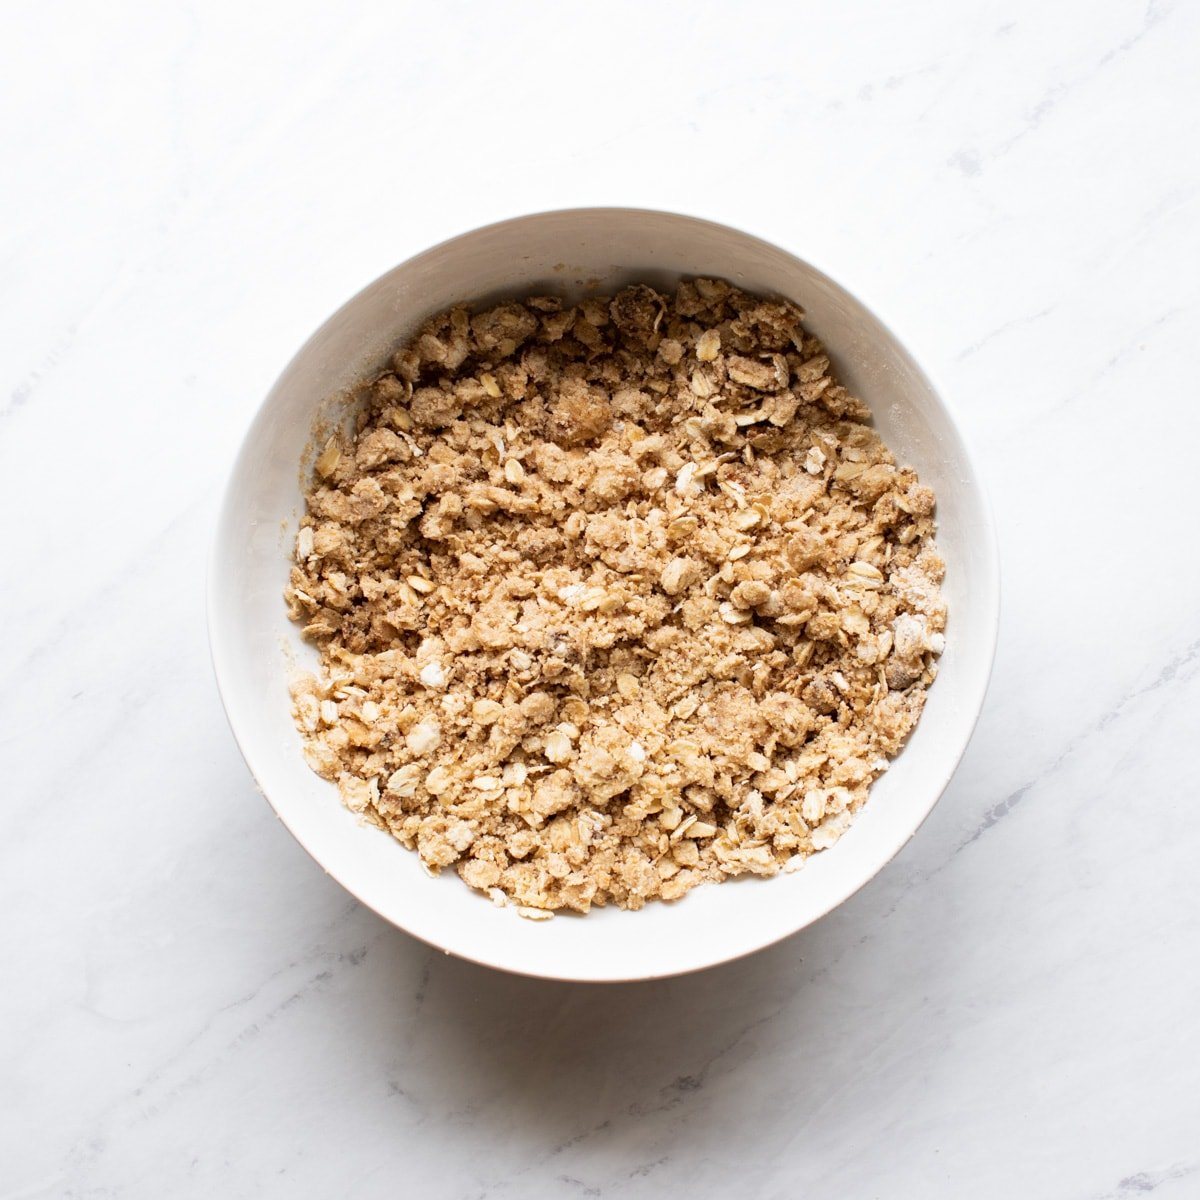 Flour, oats, brown sugar, cinnamon, and melted butter have been mixed until crumbly.